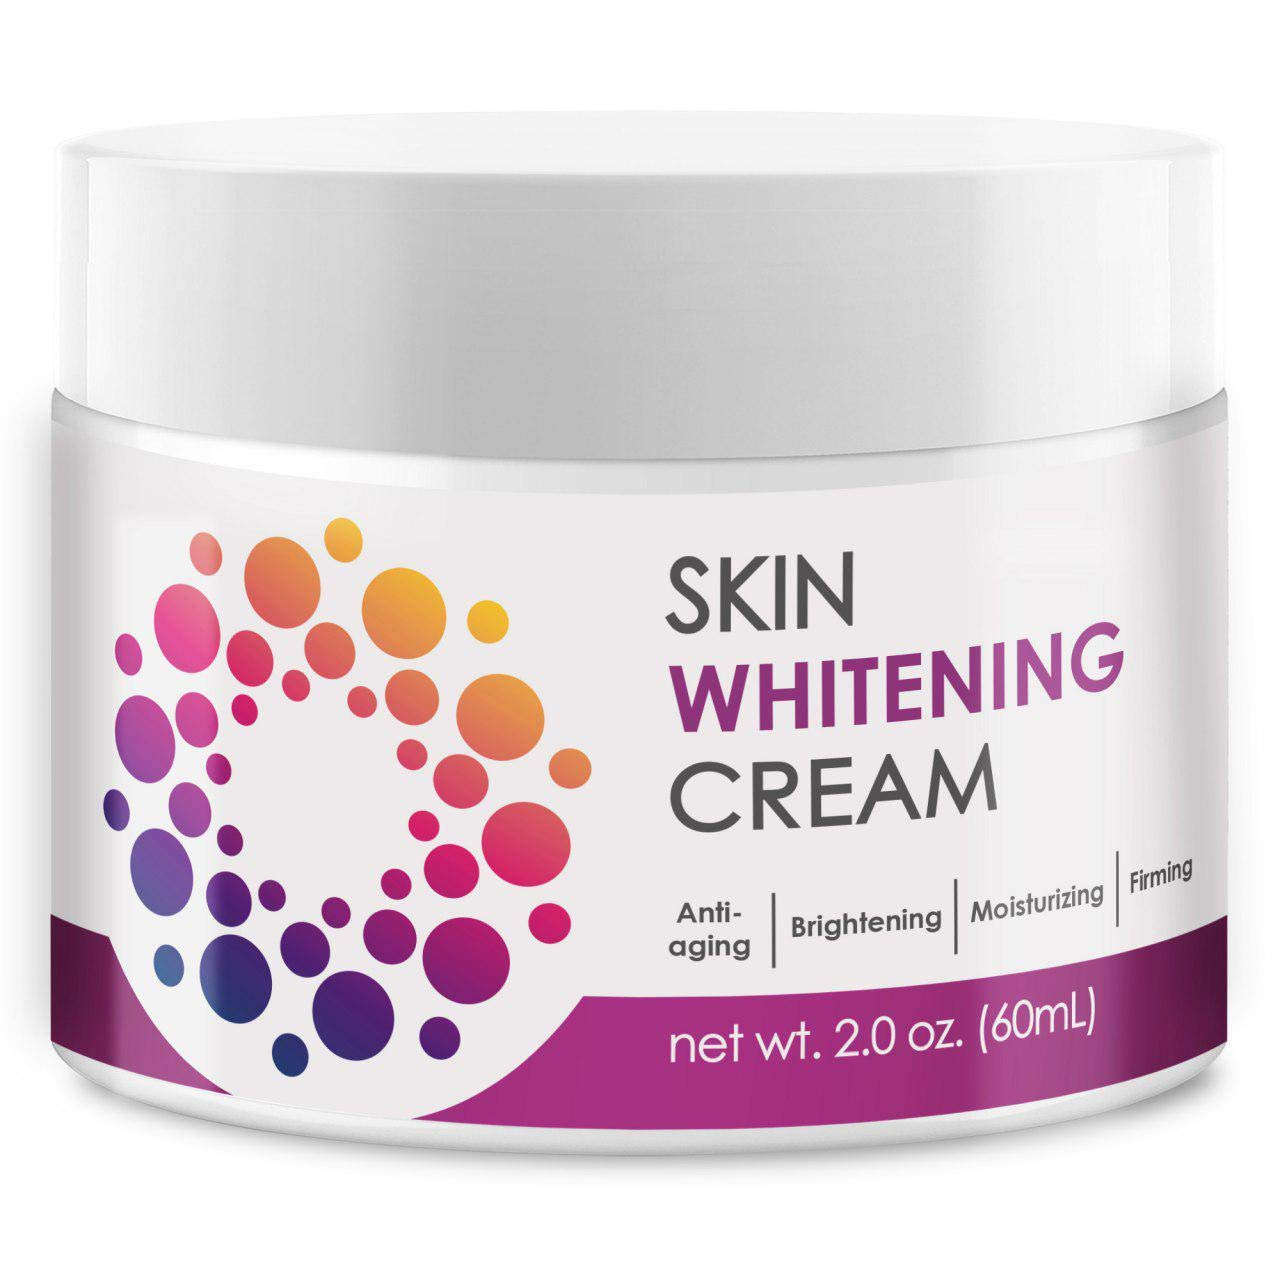 ACTIVSCIENCE Whitening Cream - Powerful Skin Lightening Cream for Face & Body. Dark Spot, Melasma & Hyperpigmentation Treatment